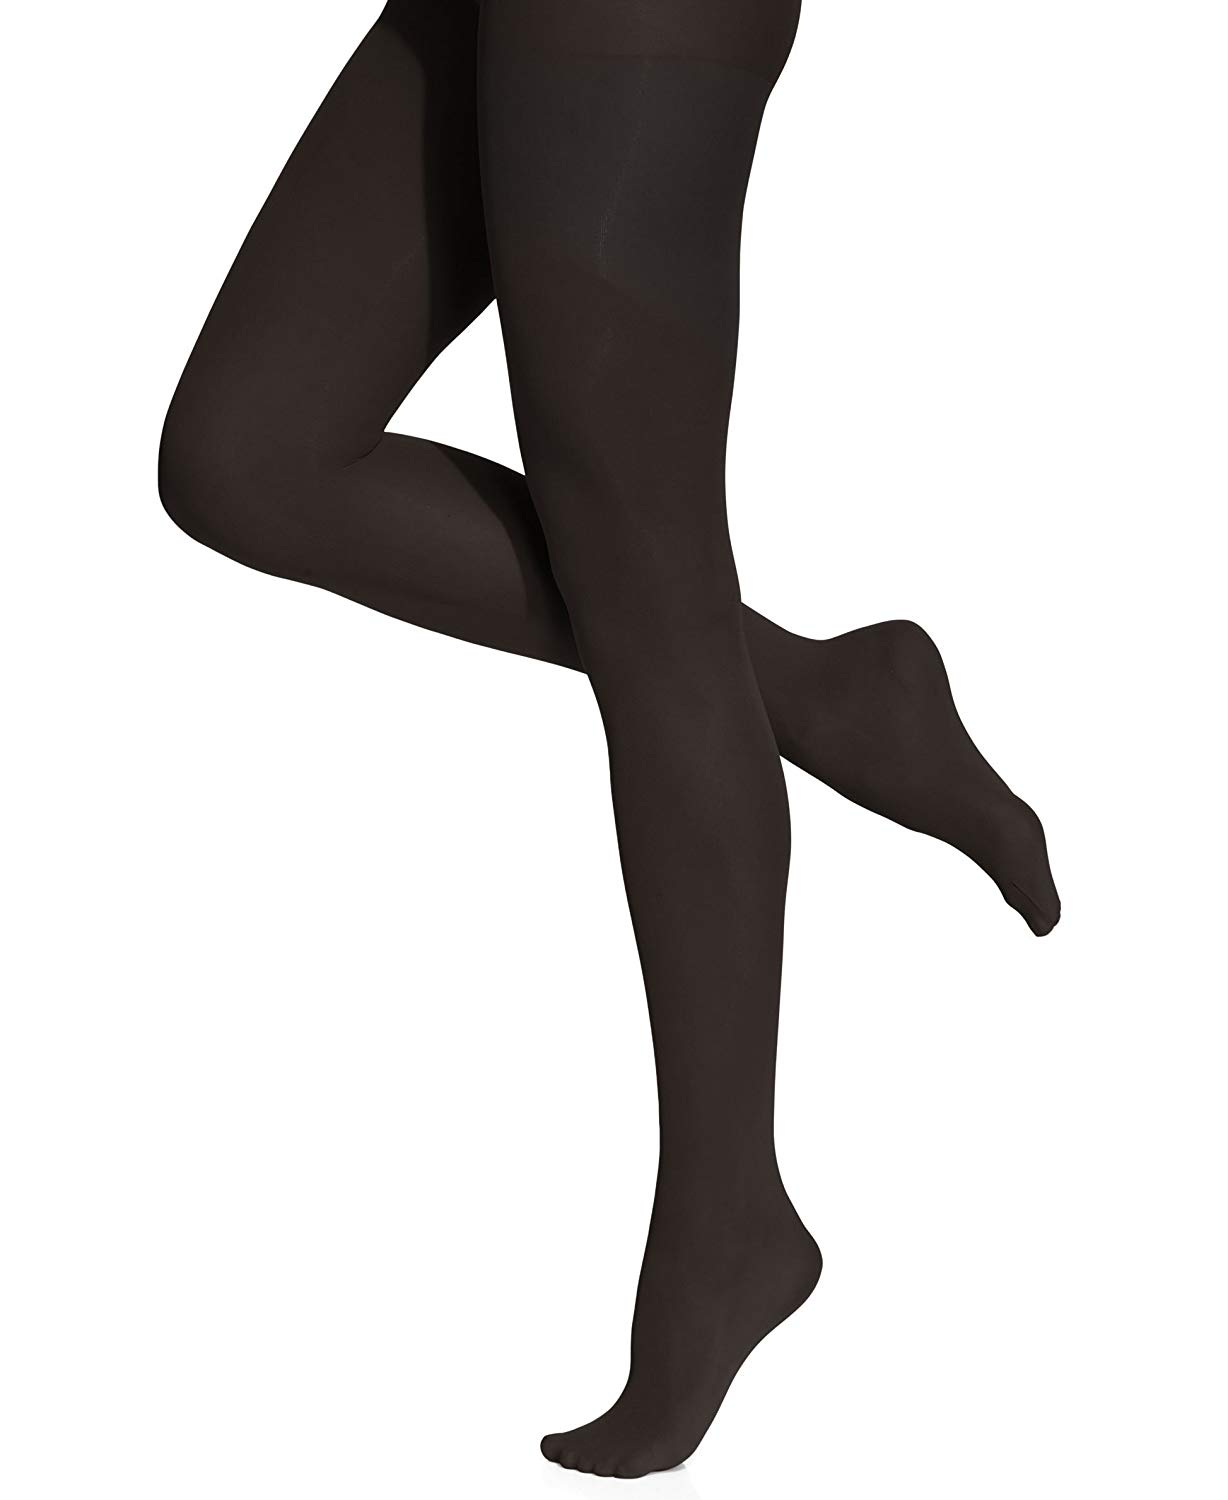 7b6e37635718d Get Quotations · Ladies 1 Pair Charnos 60 Denier Seamless Opaque Tights